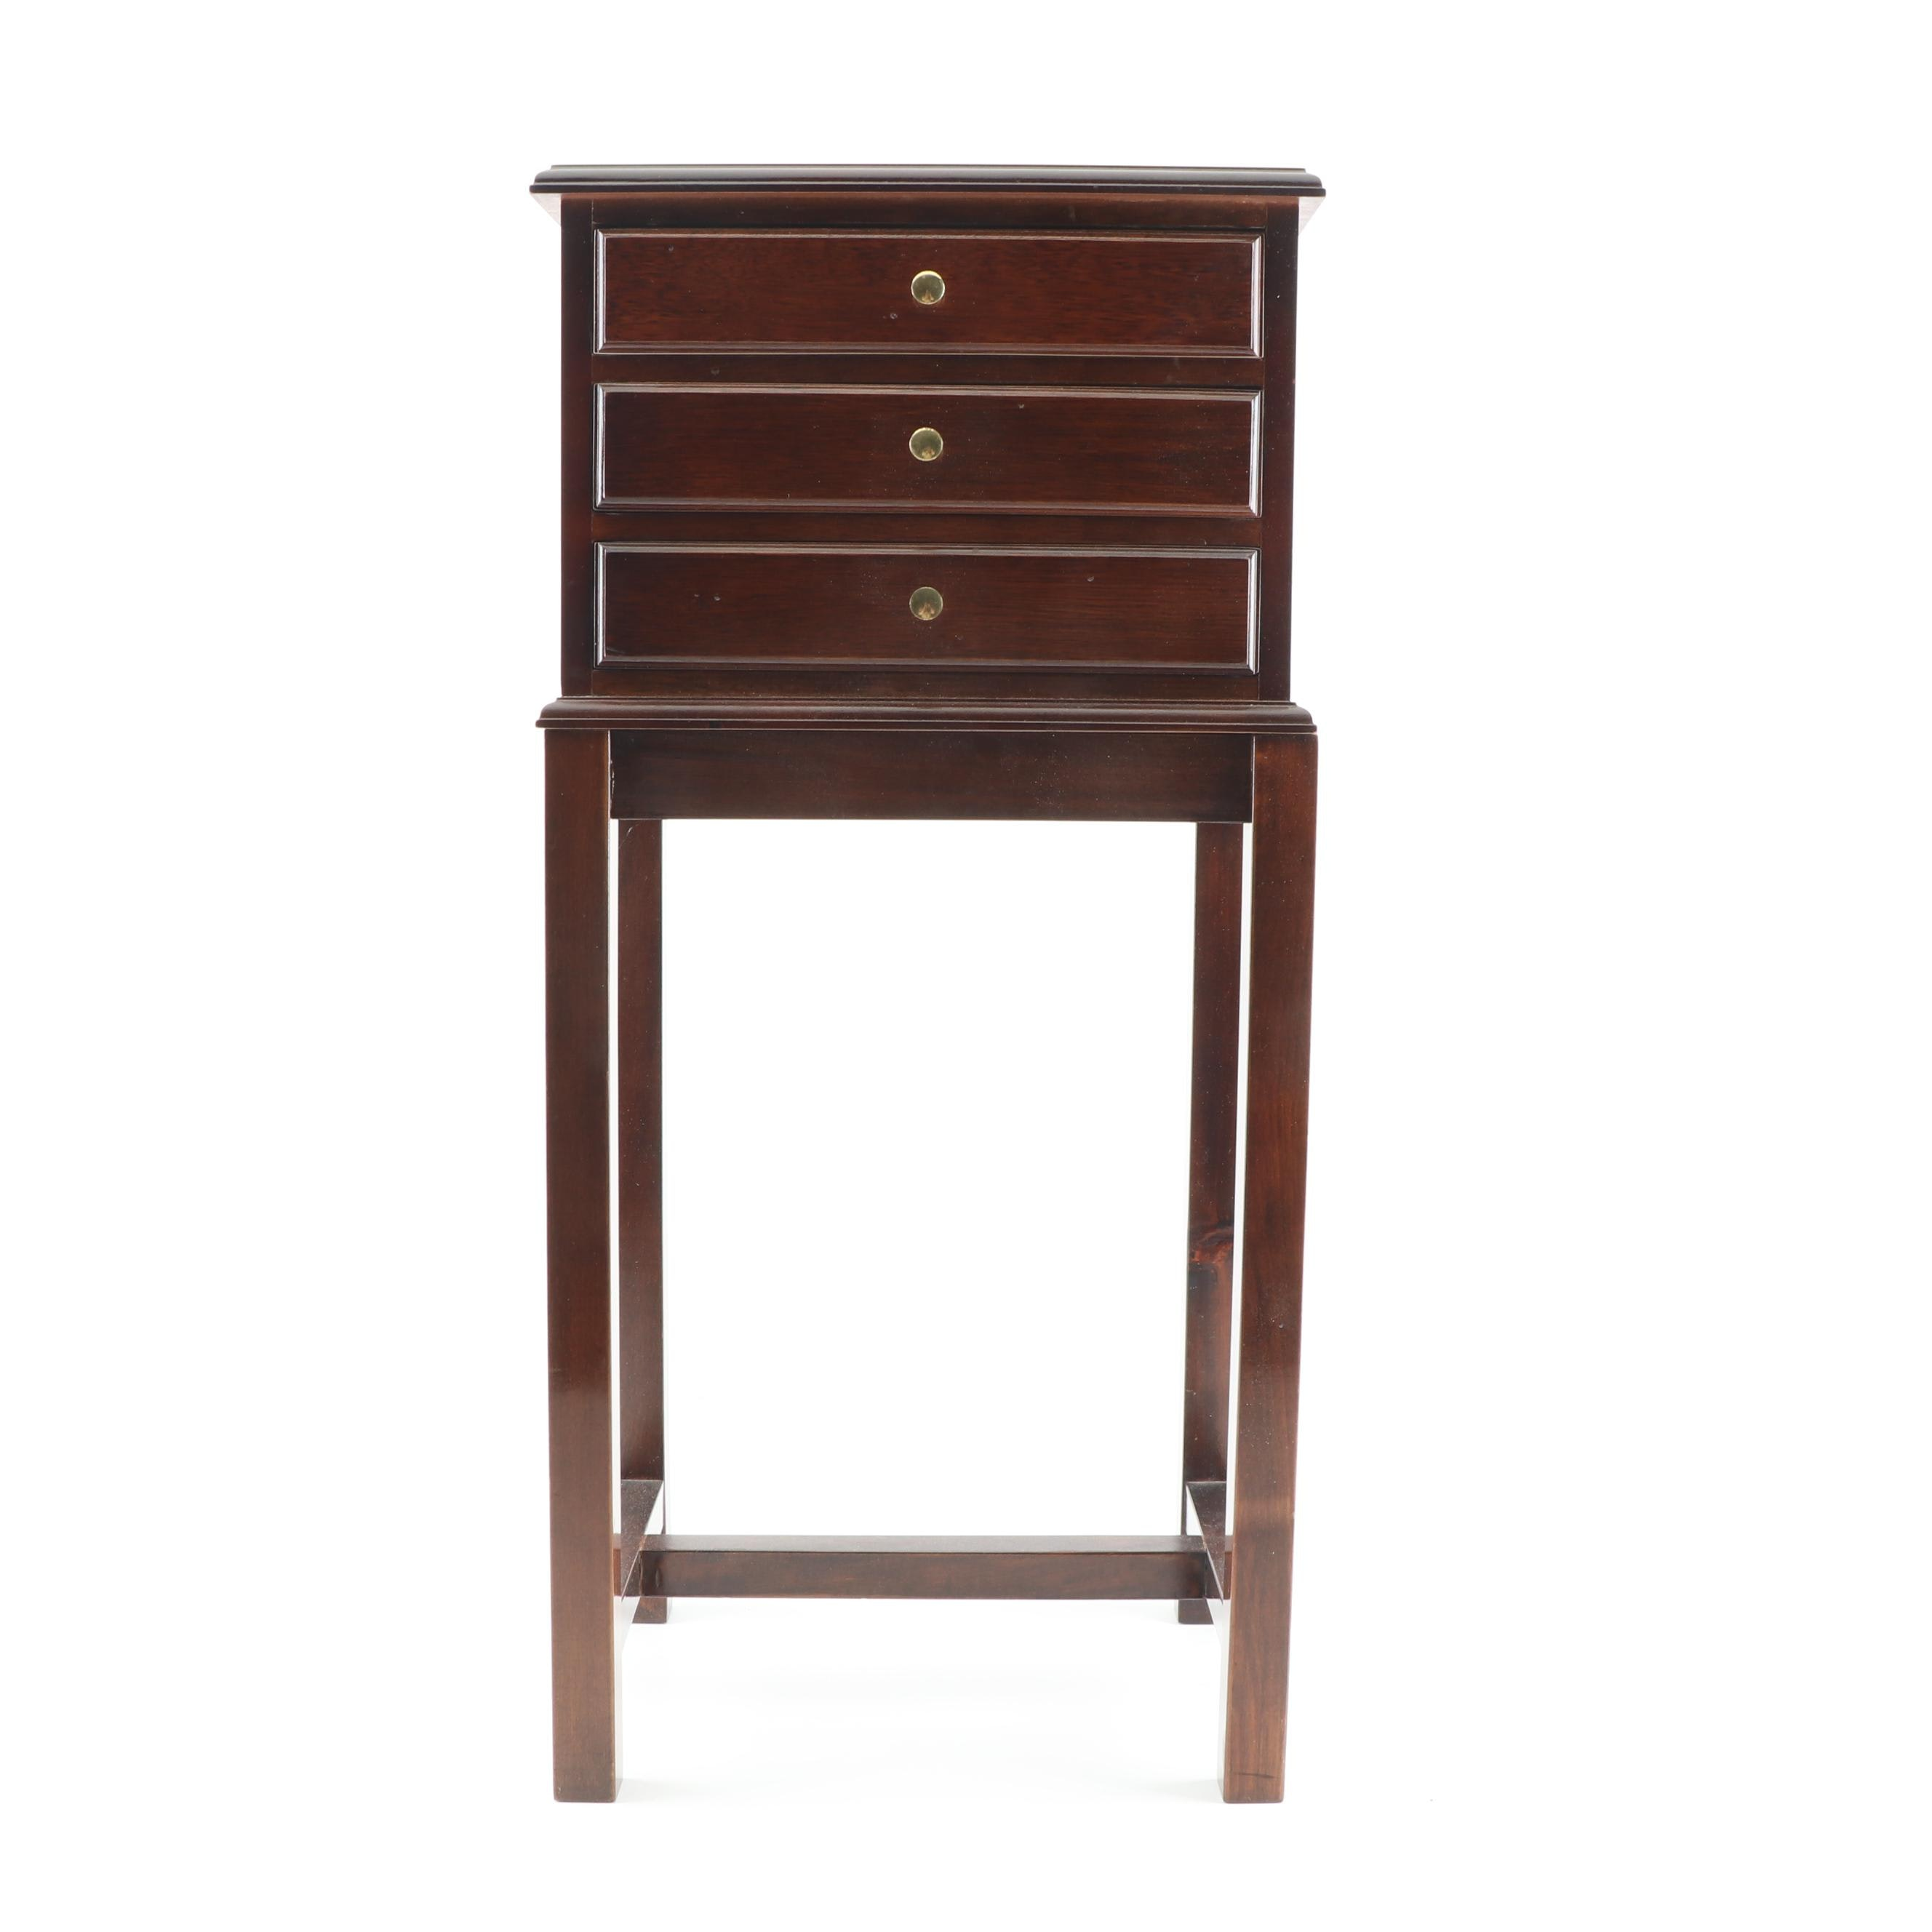 Federal Style Mahogany Flatware Chest on Stand, 21st Century